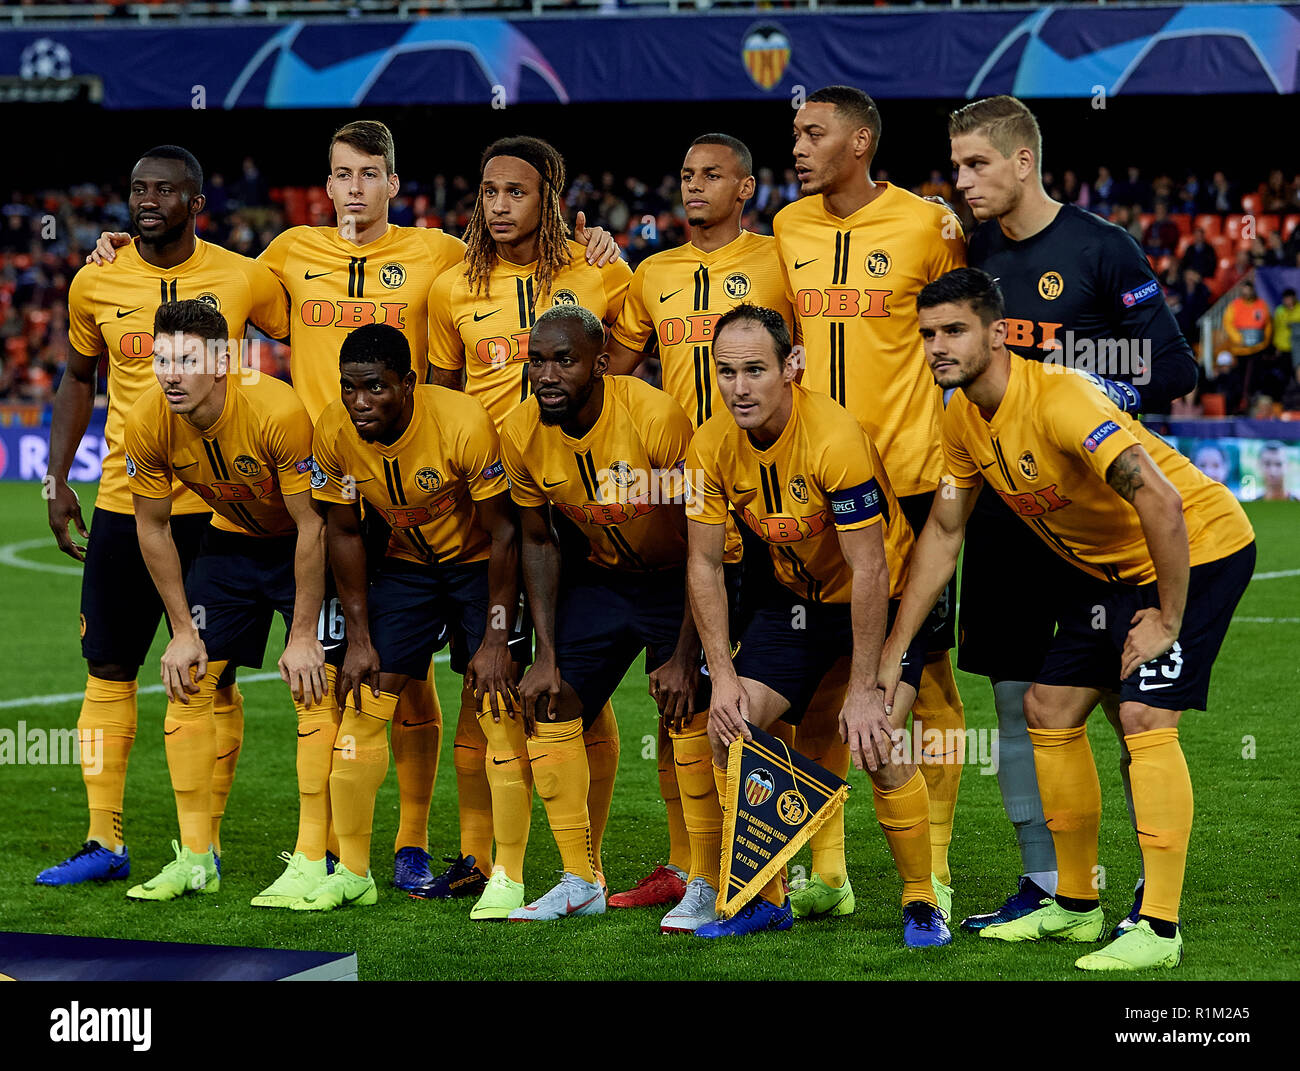 Liga Prvaka 19/20 - Page 2 Valencia-spain-november-07-bsc-young-boys-team-line-up-prior-to-the-group-h-match-of-the-uefa-champions-league-between-valencia-and-bsc-young-boys-at-estadio-mestalla-on-november-7-2018-in-valencia-spain-david-aliagamb-media-R1M2A5